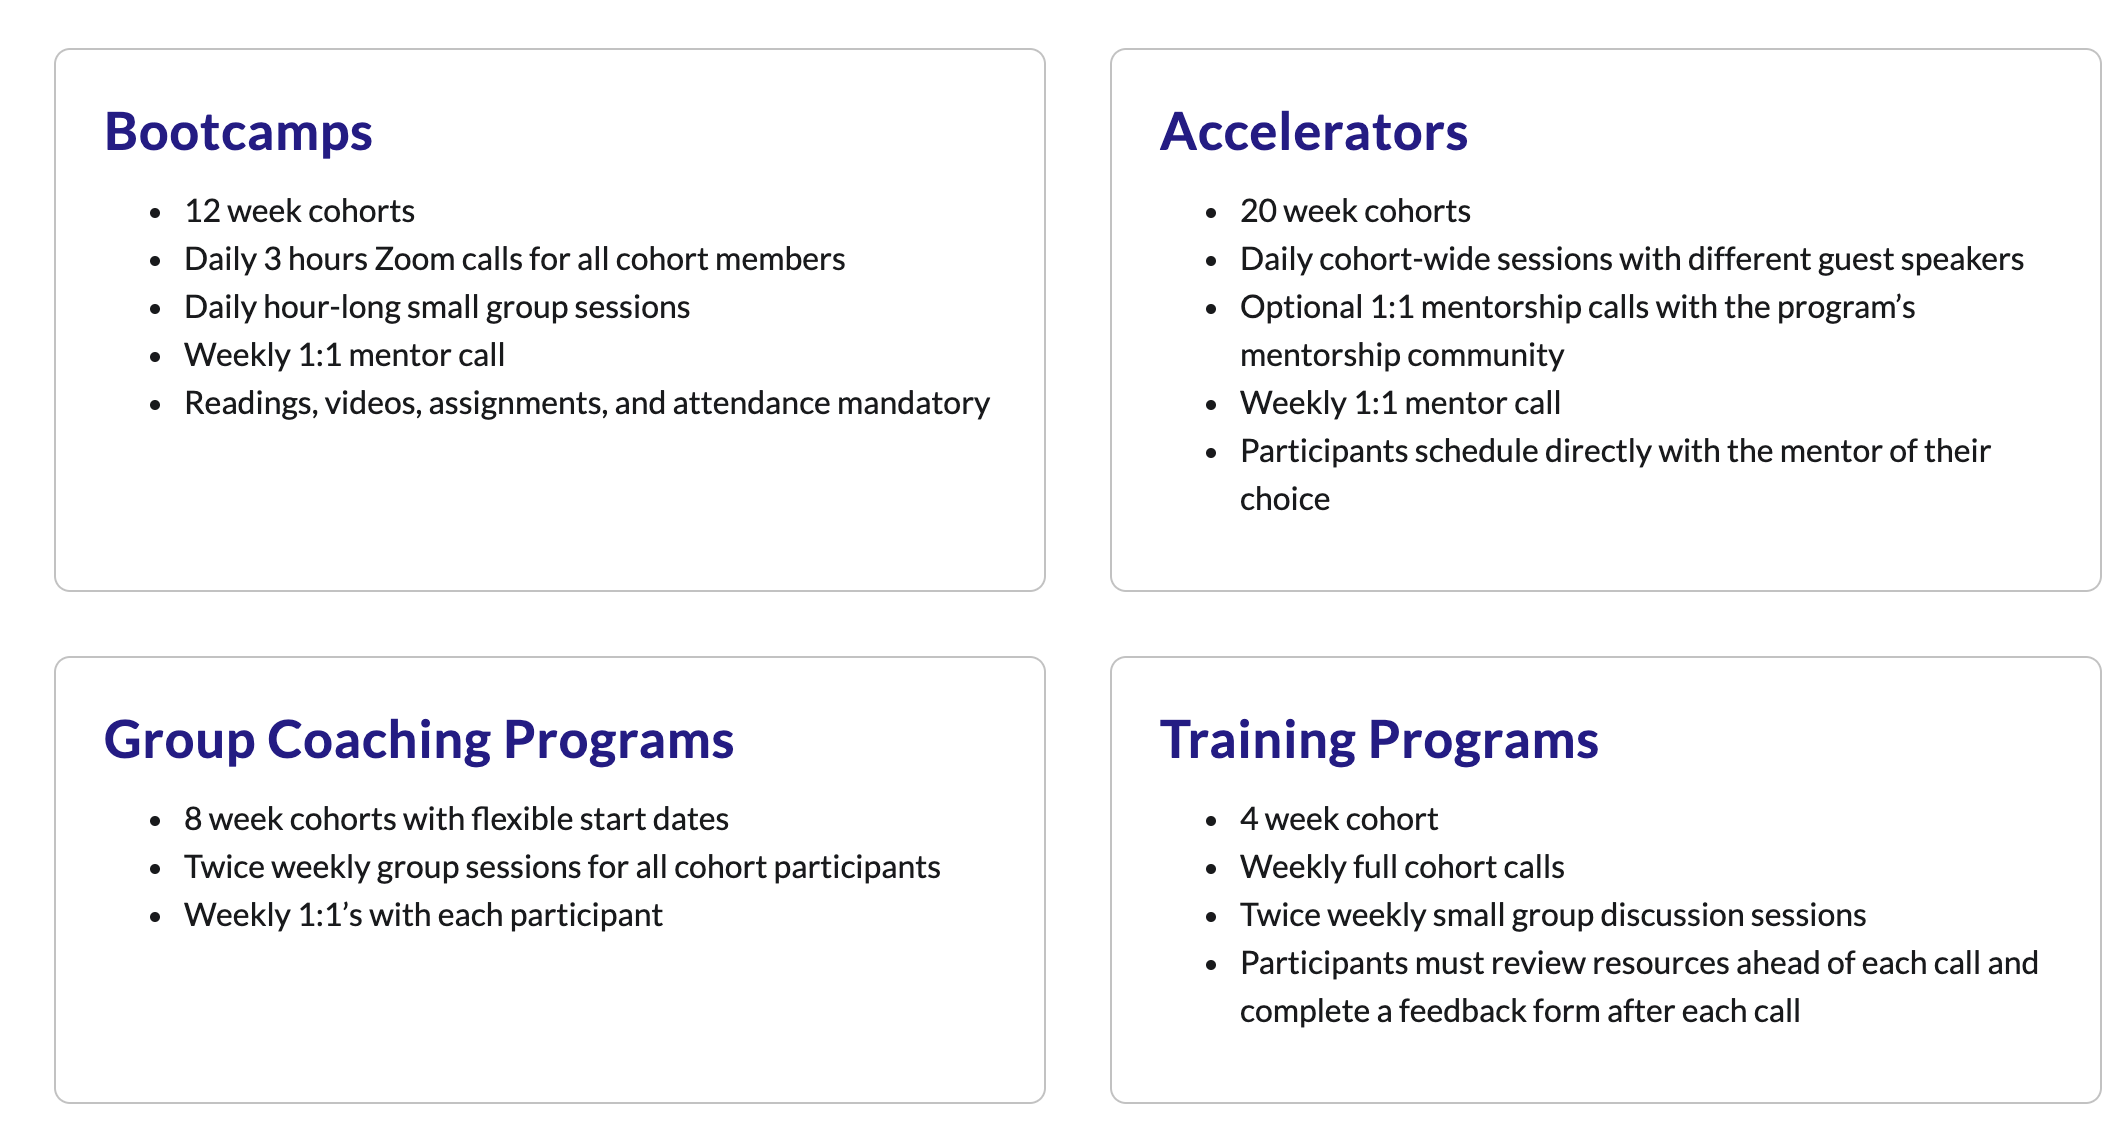 Different ways to leverage live group learning for bootcamps, accelerators, coaches, and training programs